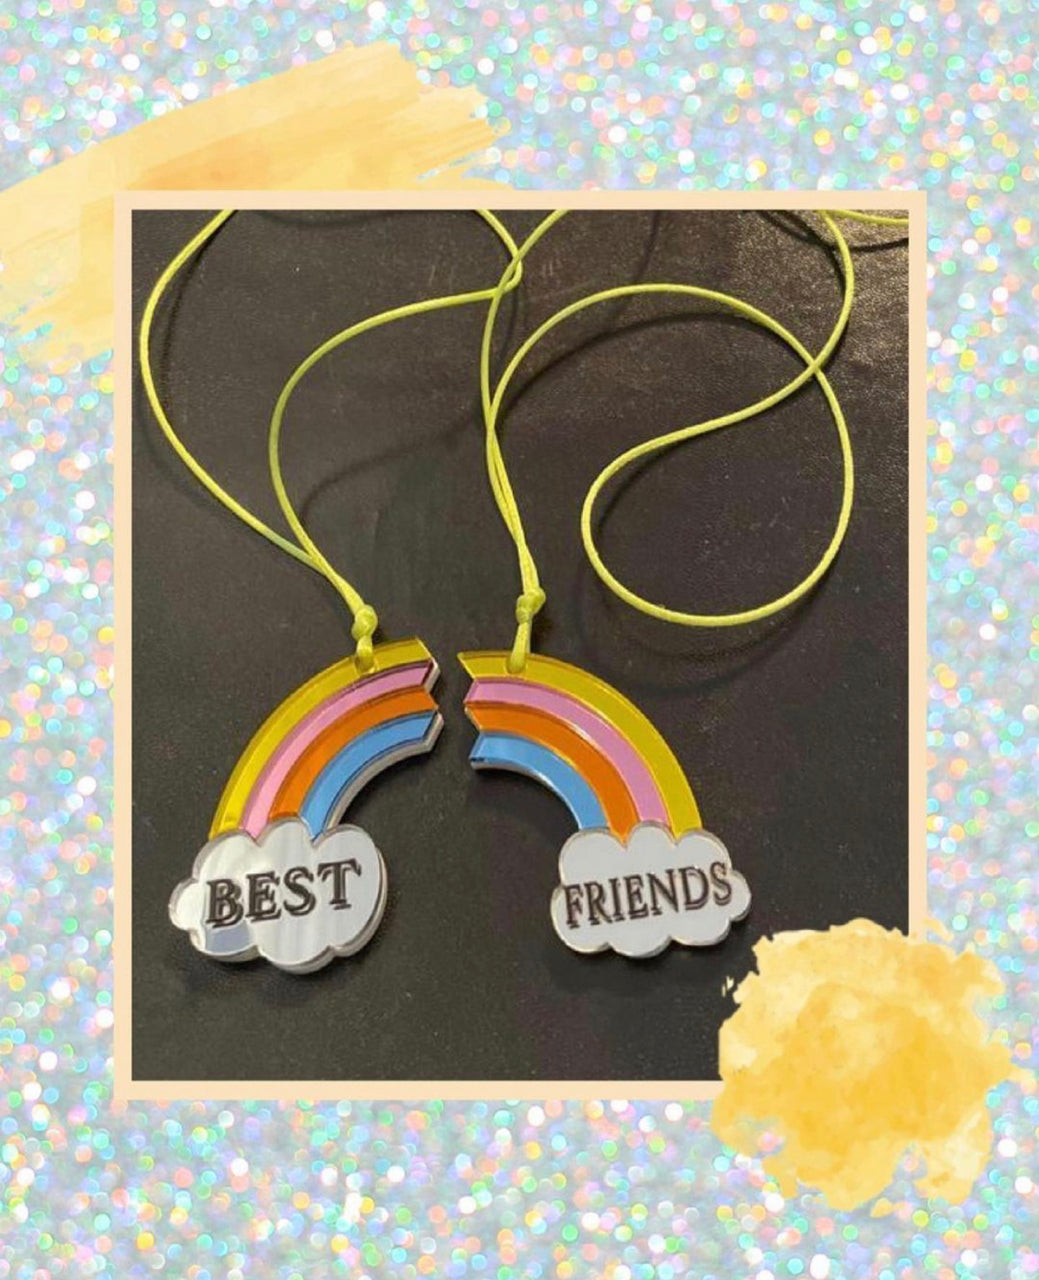 Plexiglass-Best Friend Necklaces